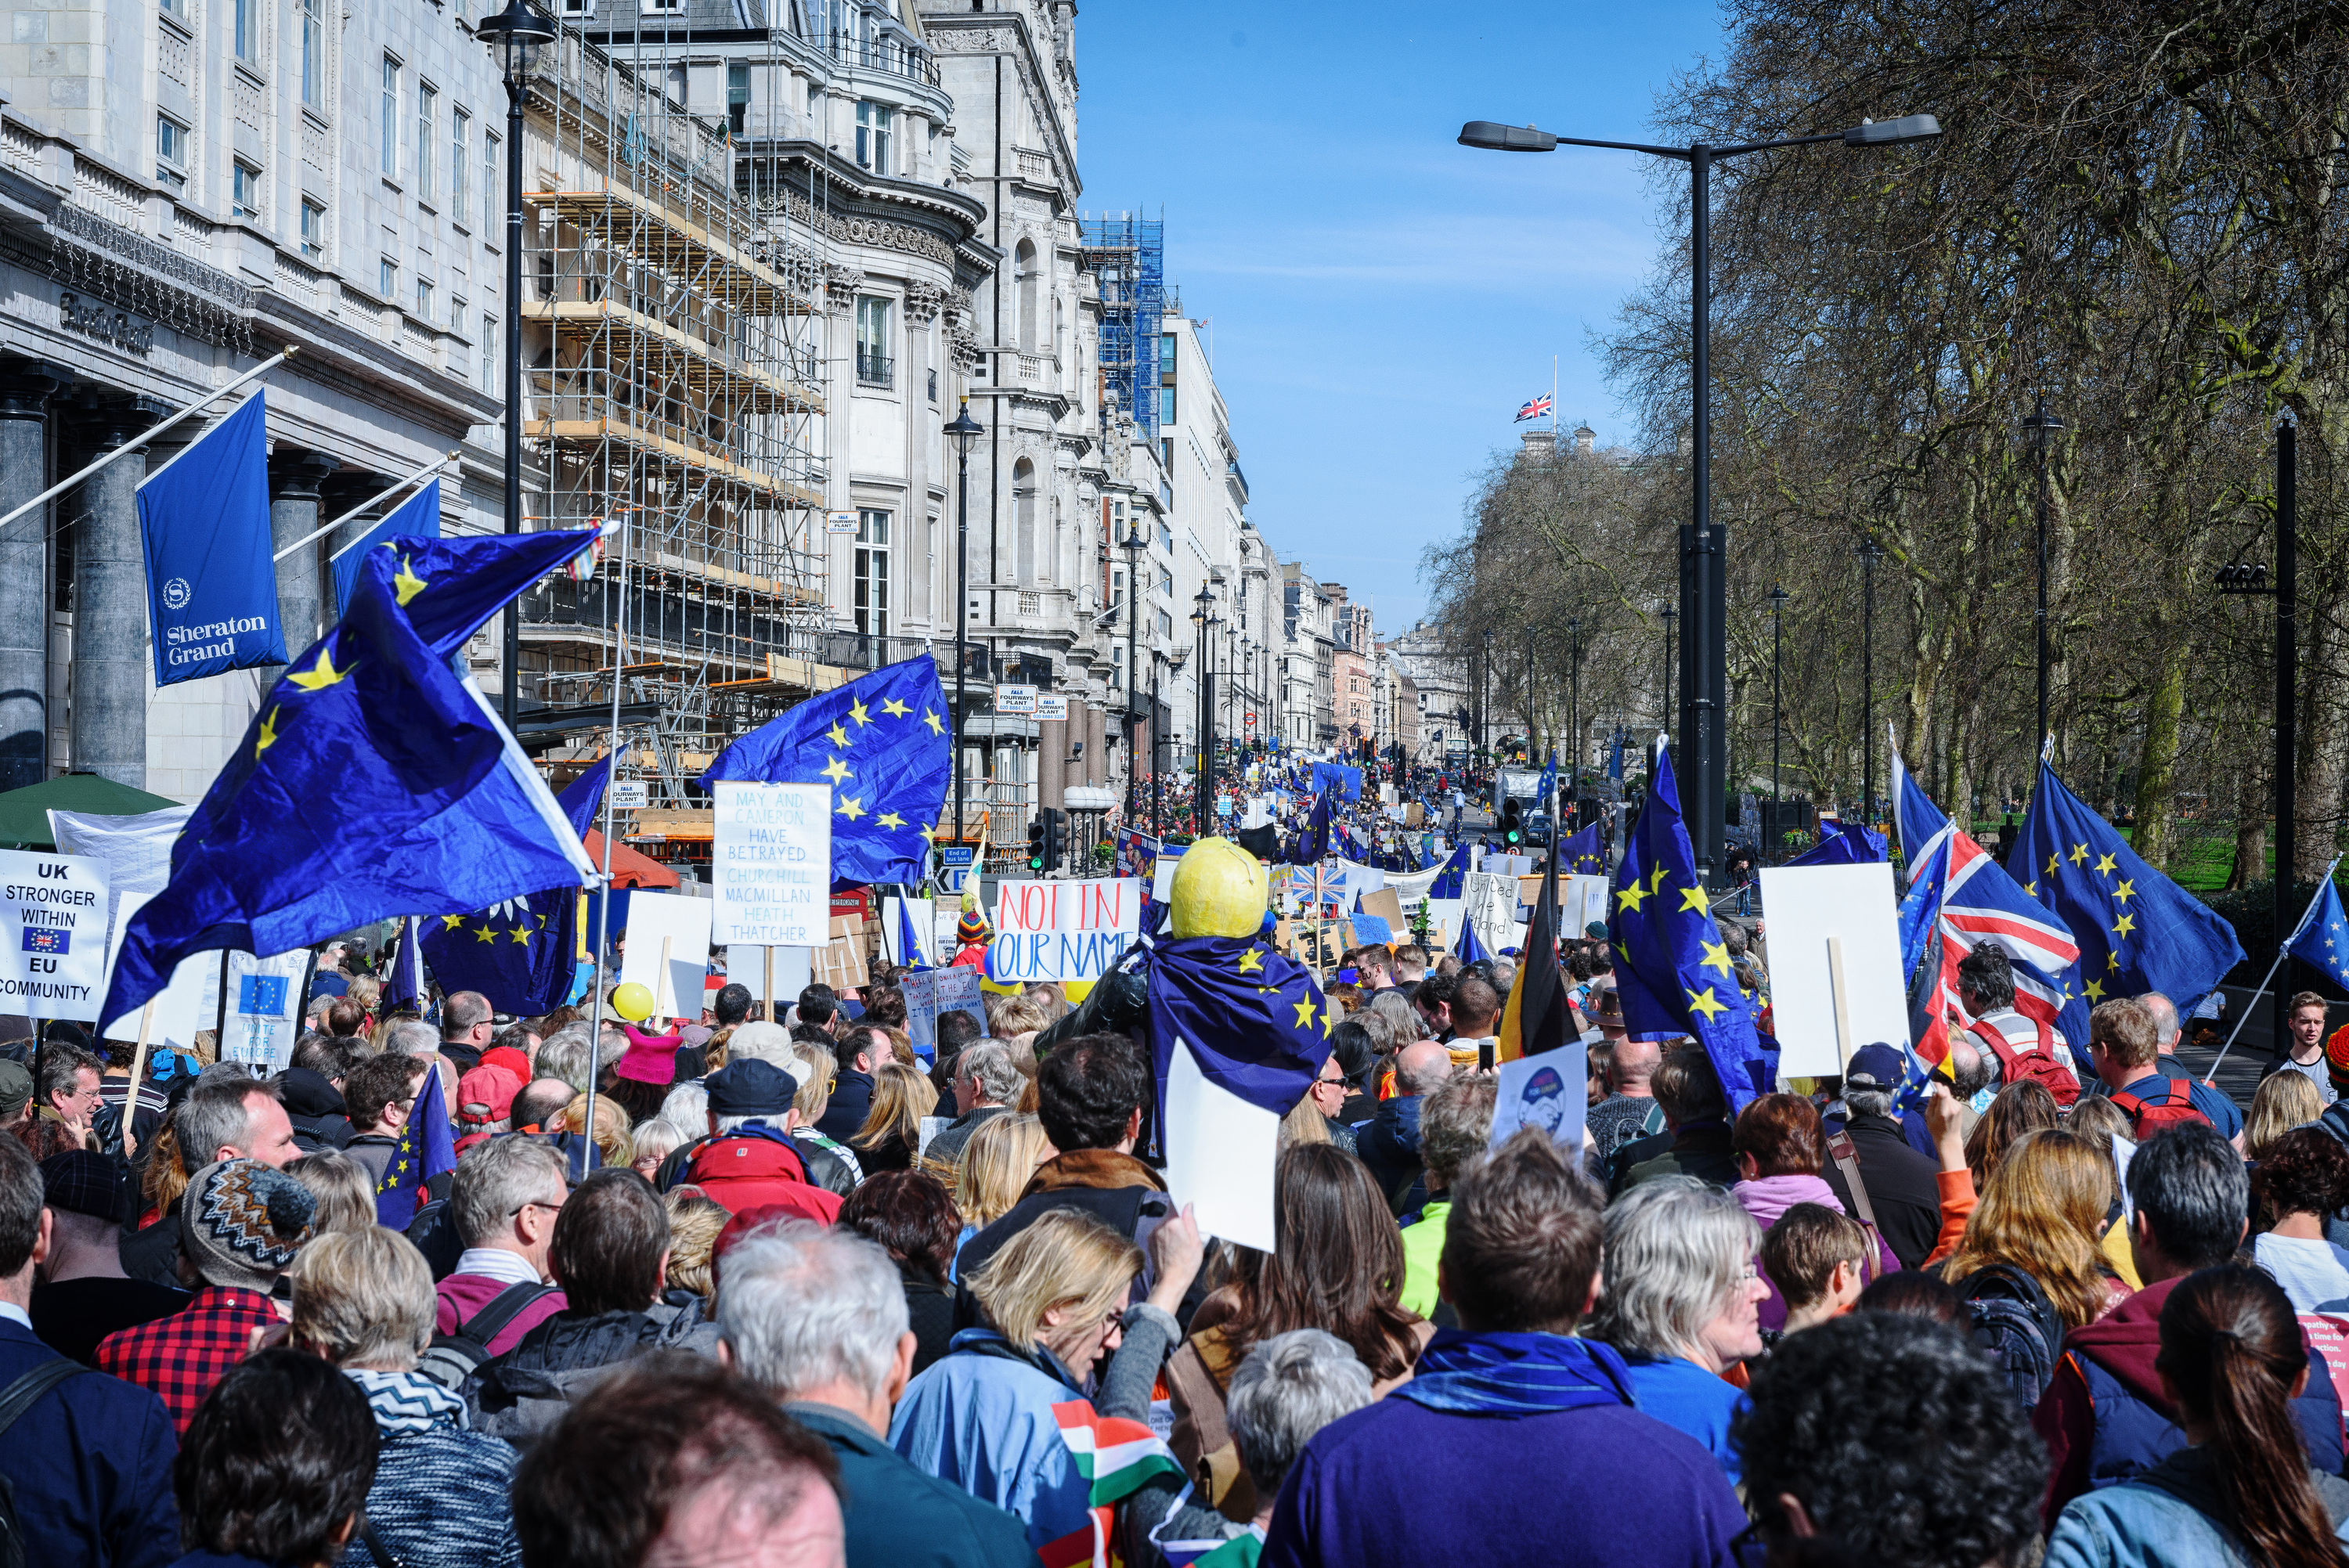 Three celebrations of Europe happening in London this week